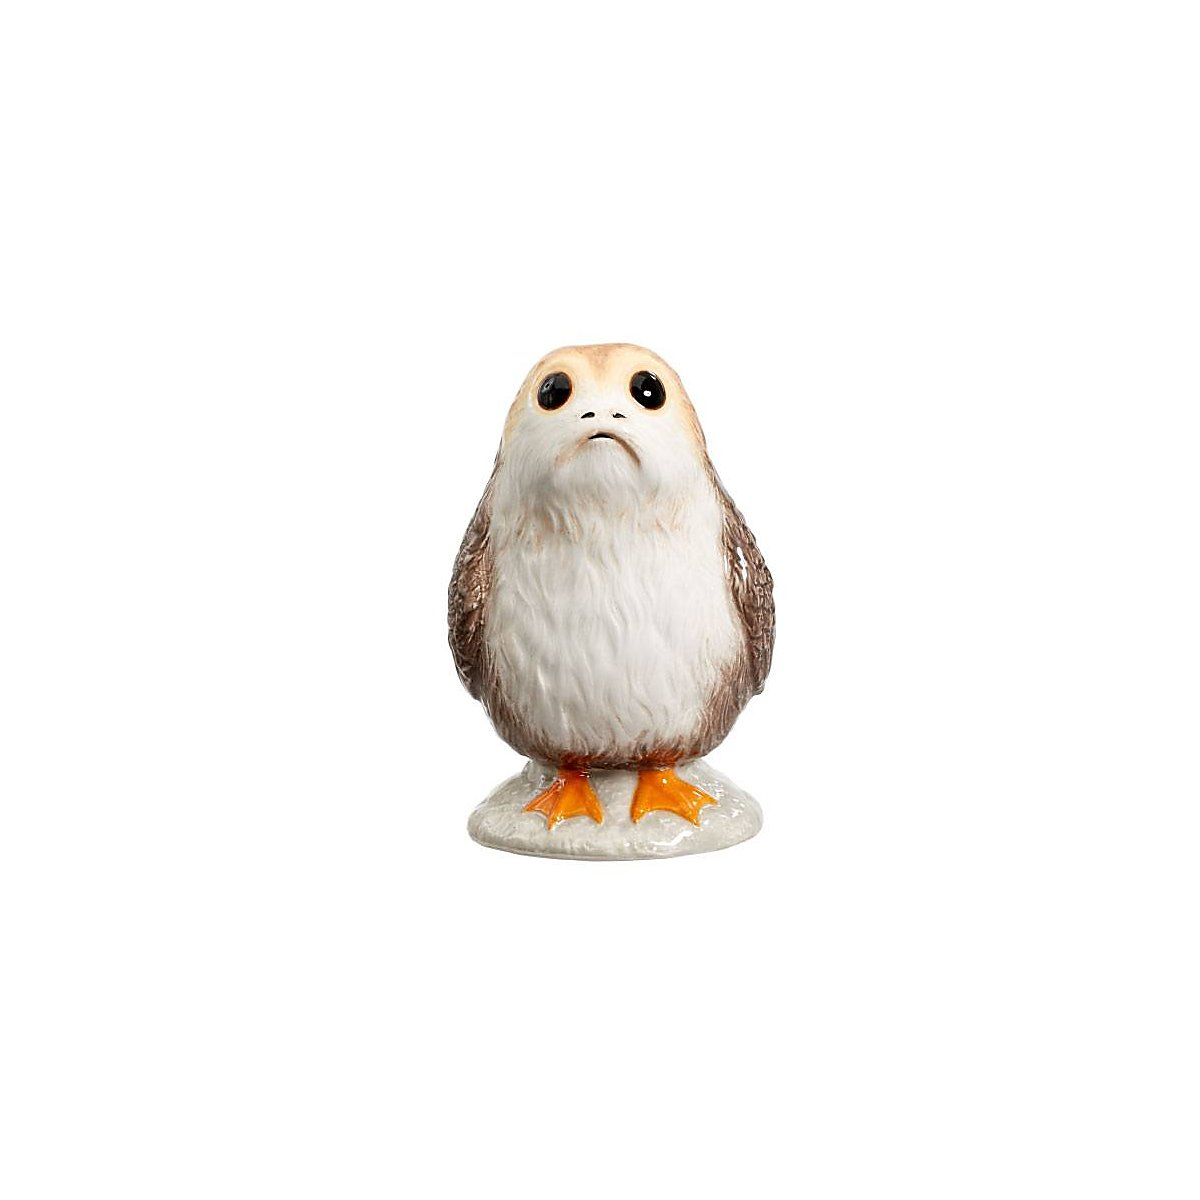 Star Wars Küchenhelfer Star Wars 8 Porg Eierbecher